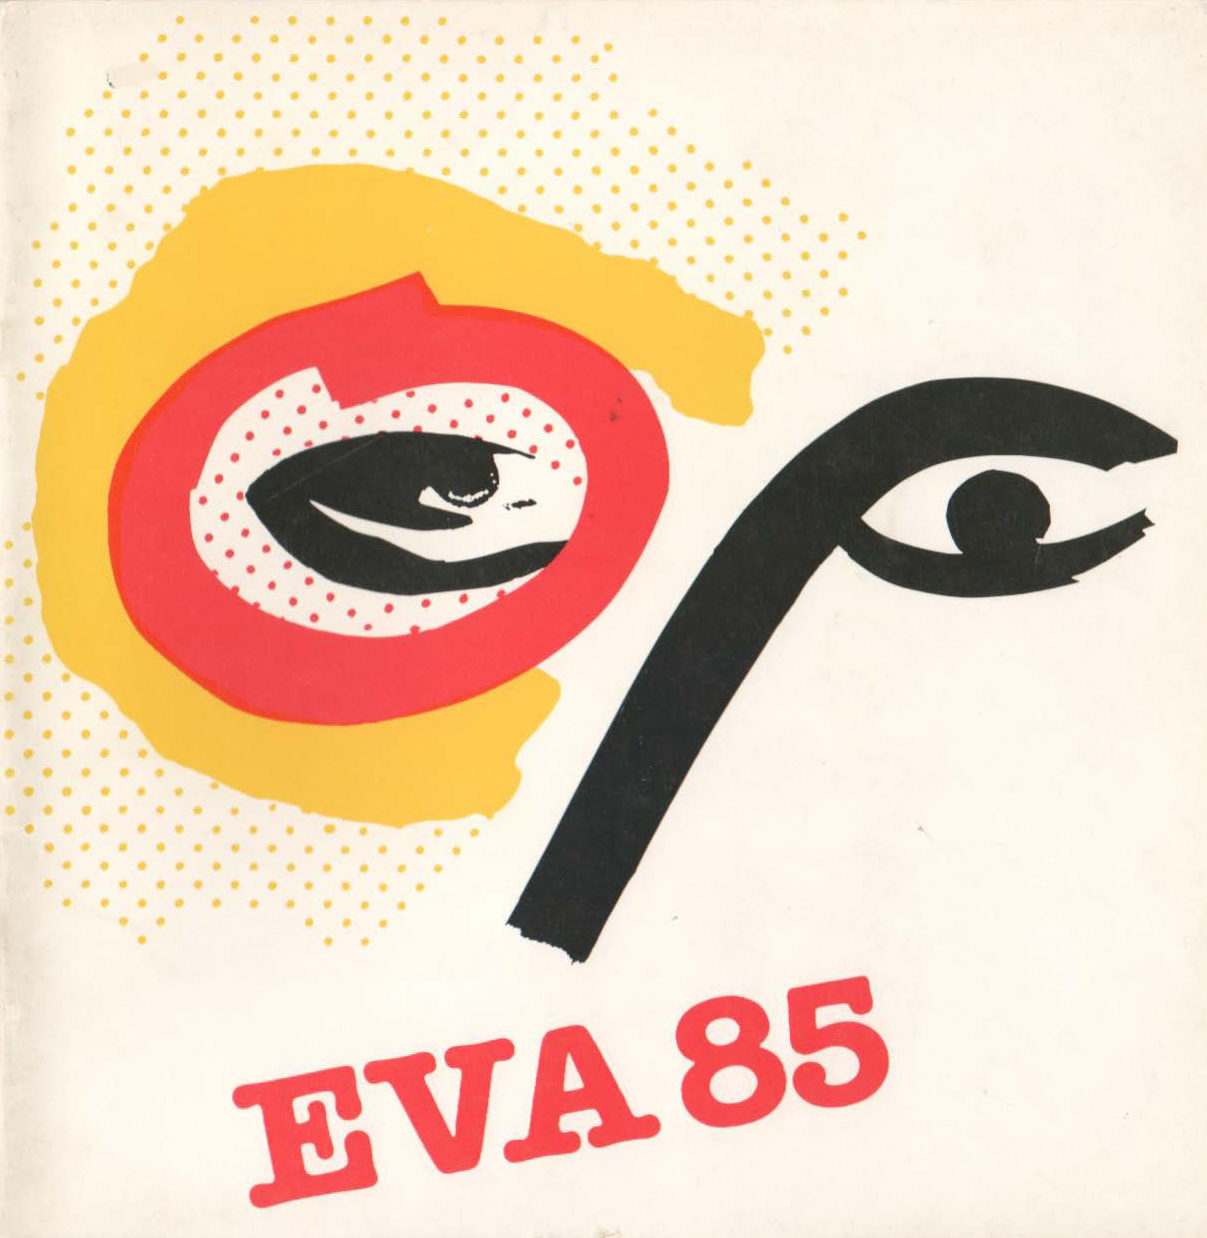 EVA 1985 Catalogue Cover